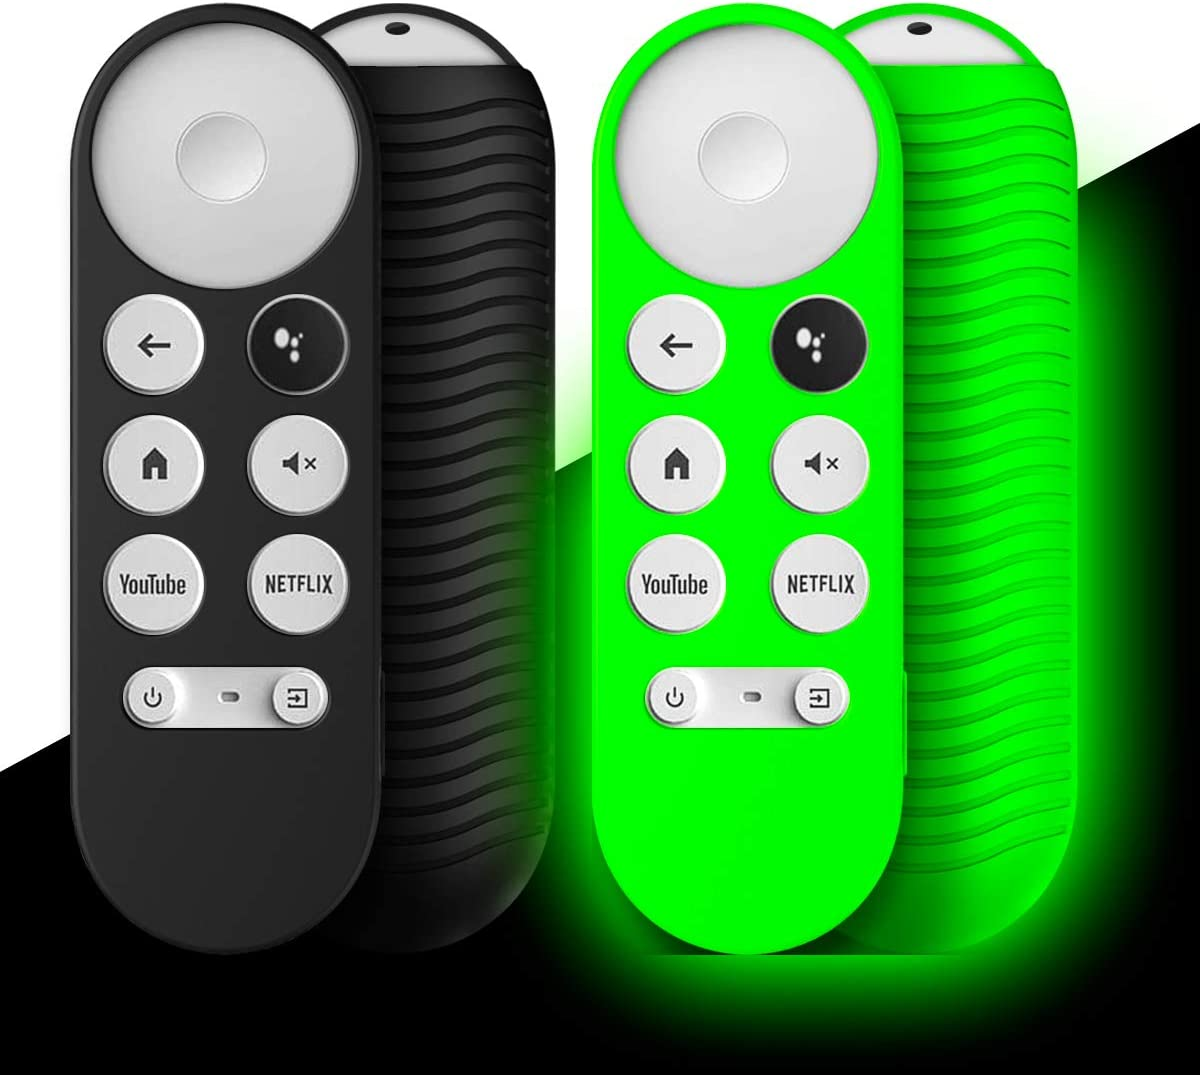 [2-Pack] Silicone Cover for Chromecast Google TV 2020 Voice Remote, WQNIDE Protective Shockproof Anti-Lost Remote with Lanyard (Black and Glowing Green)